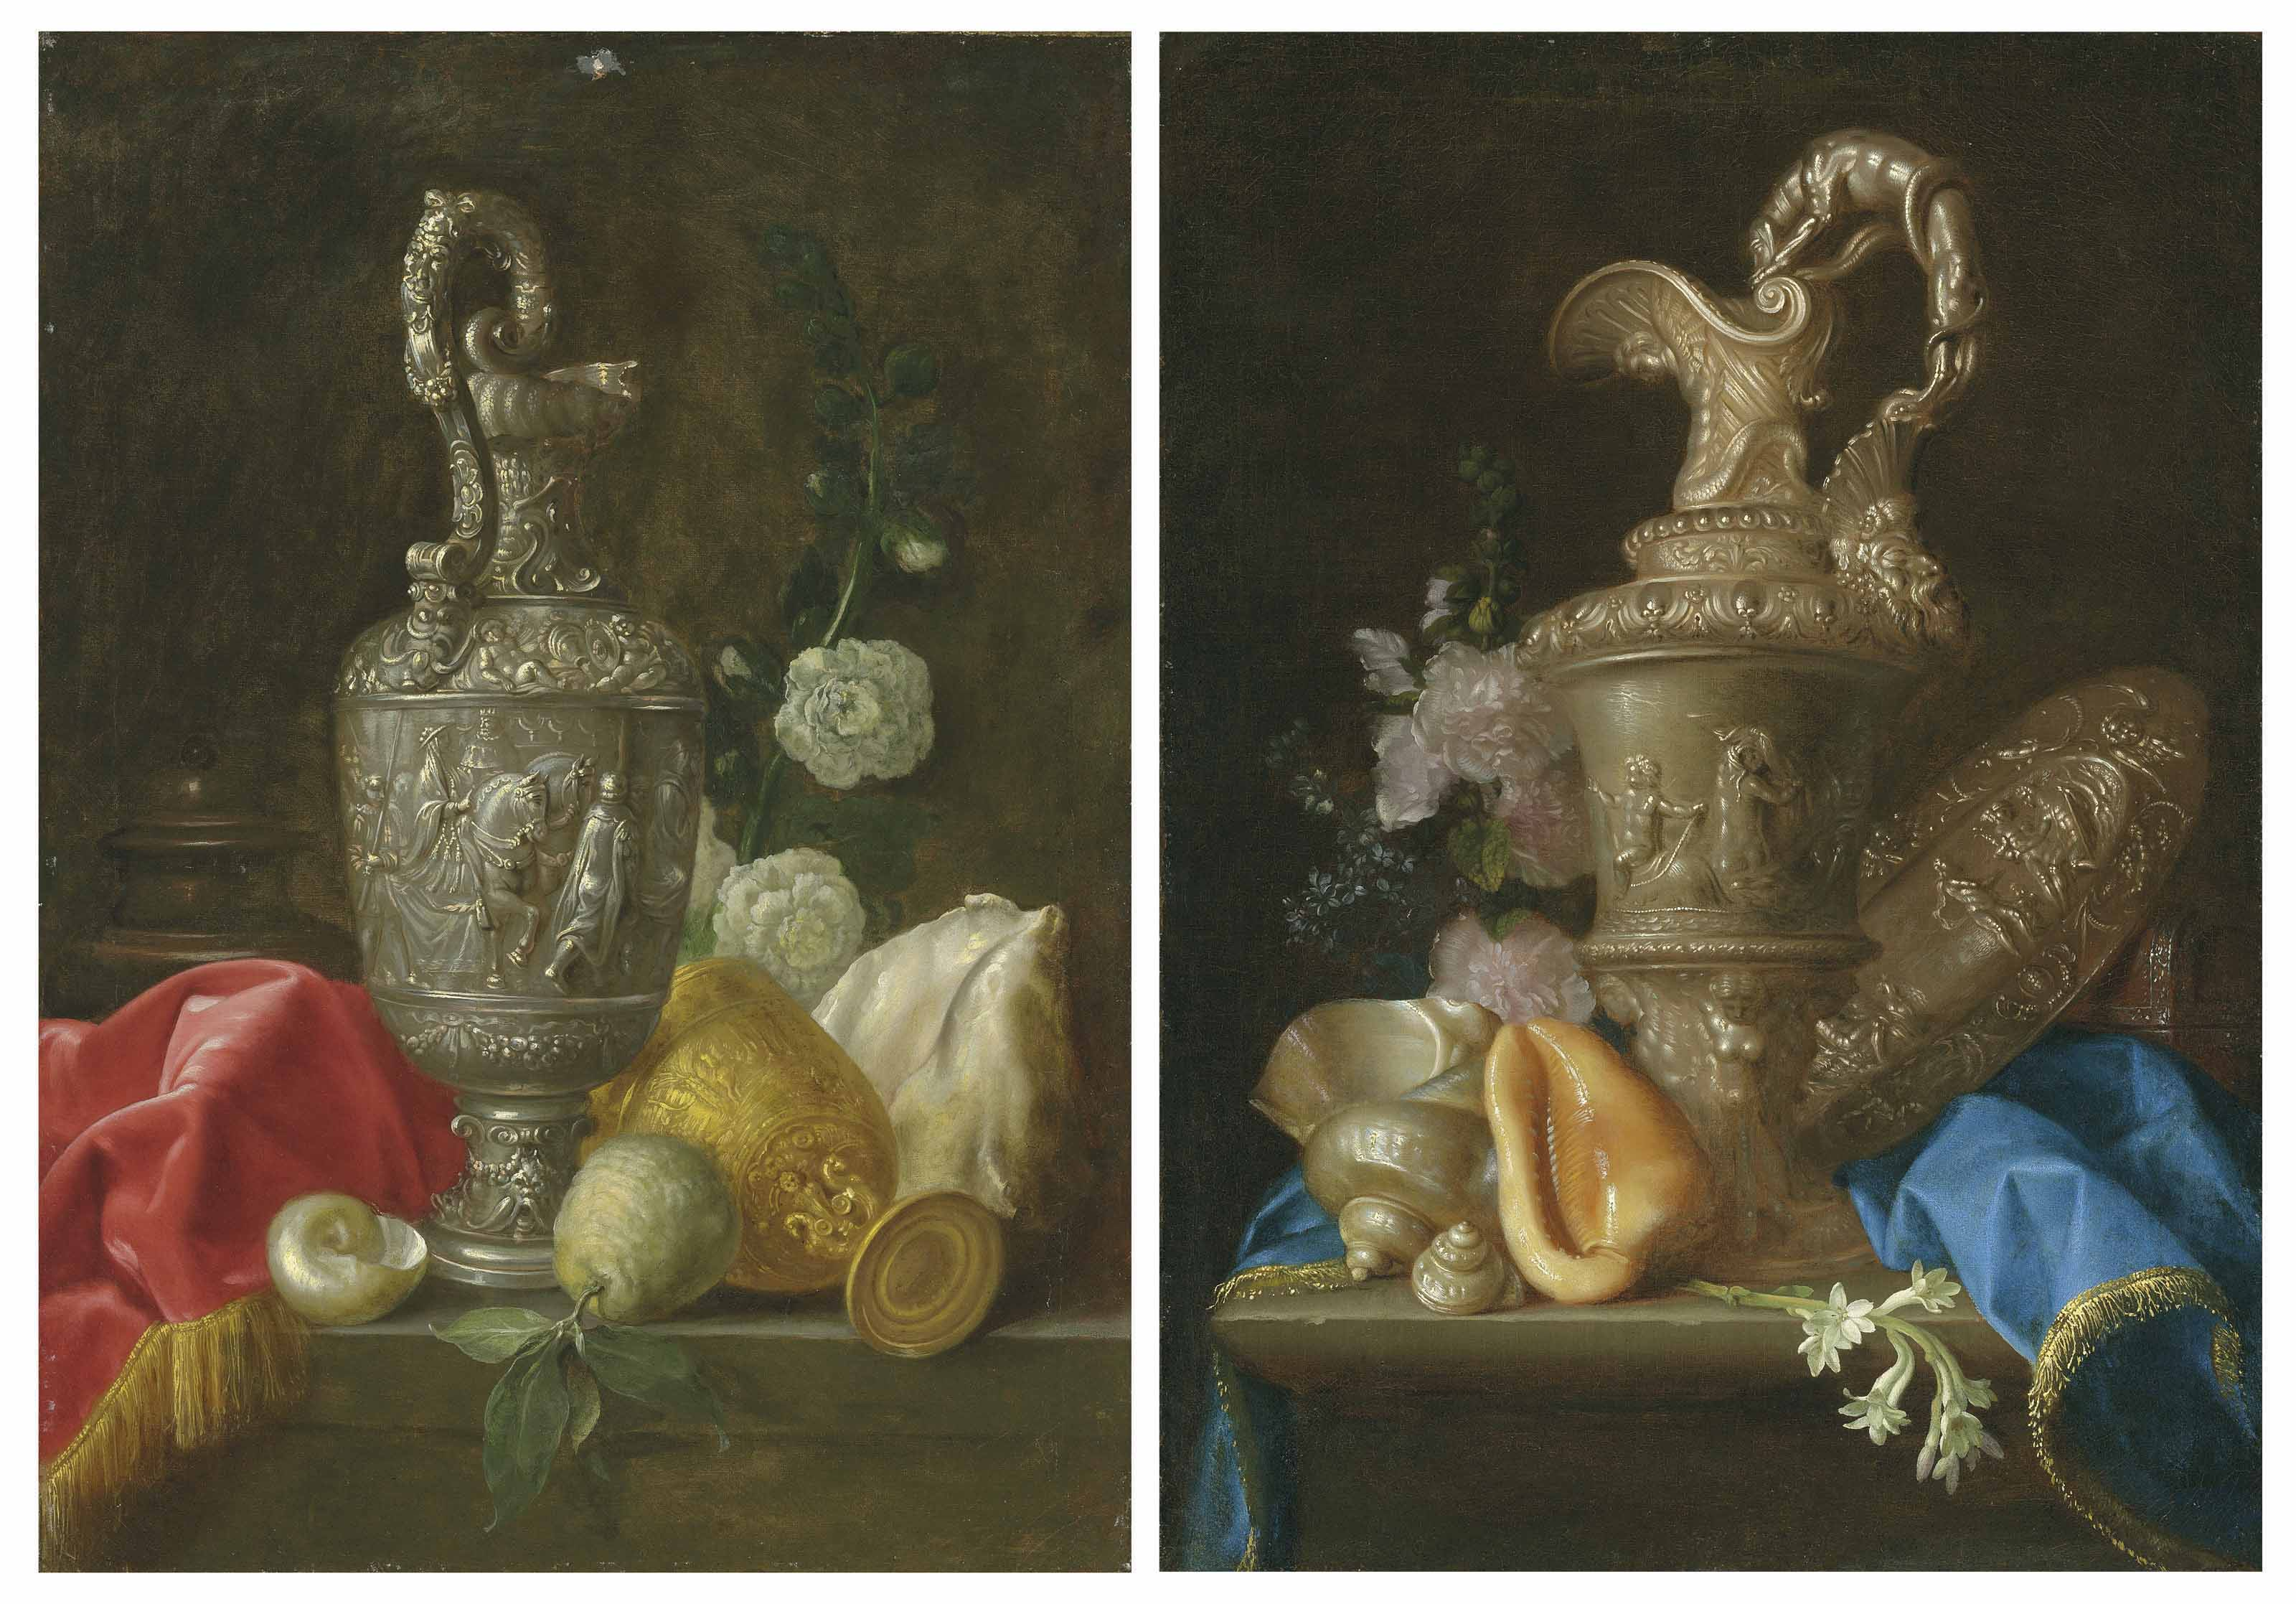 An ornate silver ewer, a gilt chalice, shells and a quince, on a partly-draped stone ledge; and An ornate silver ewer, a silver basin with the Judgement of Paris, shells and flowers, on a partly-draped stone ledge